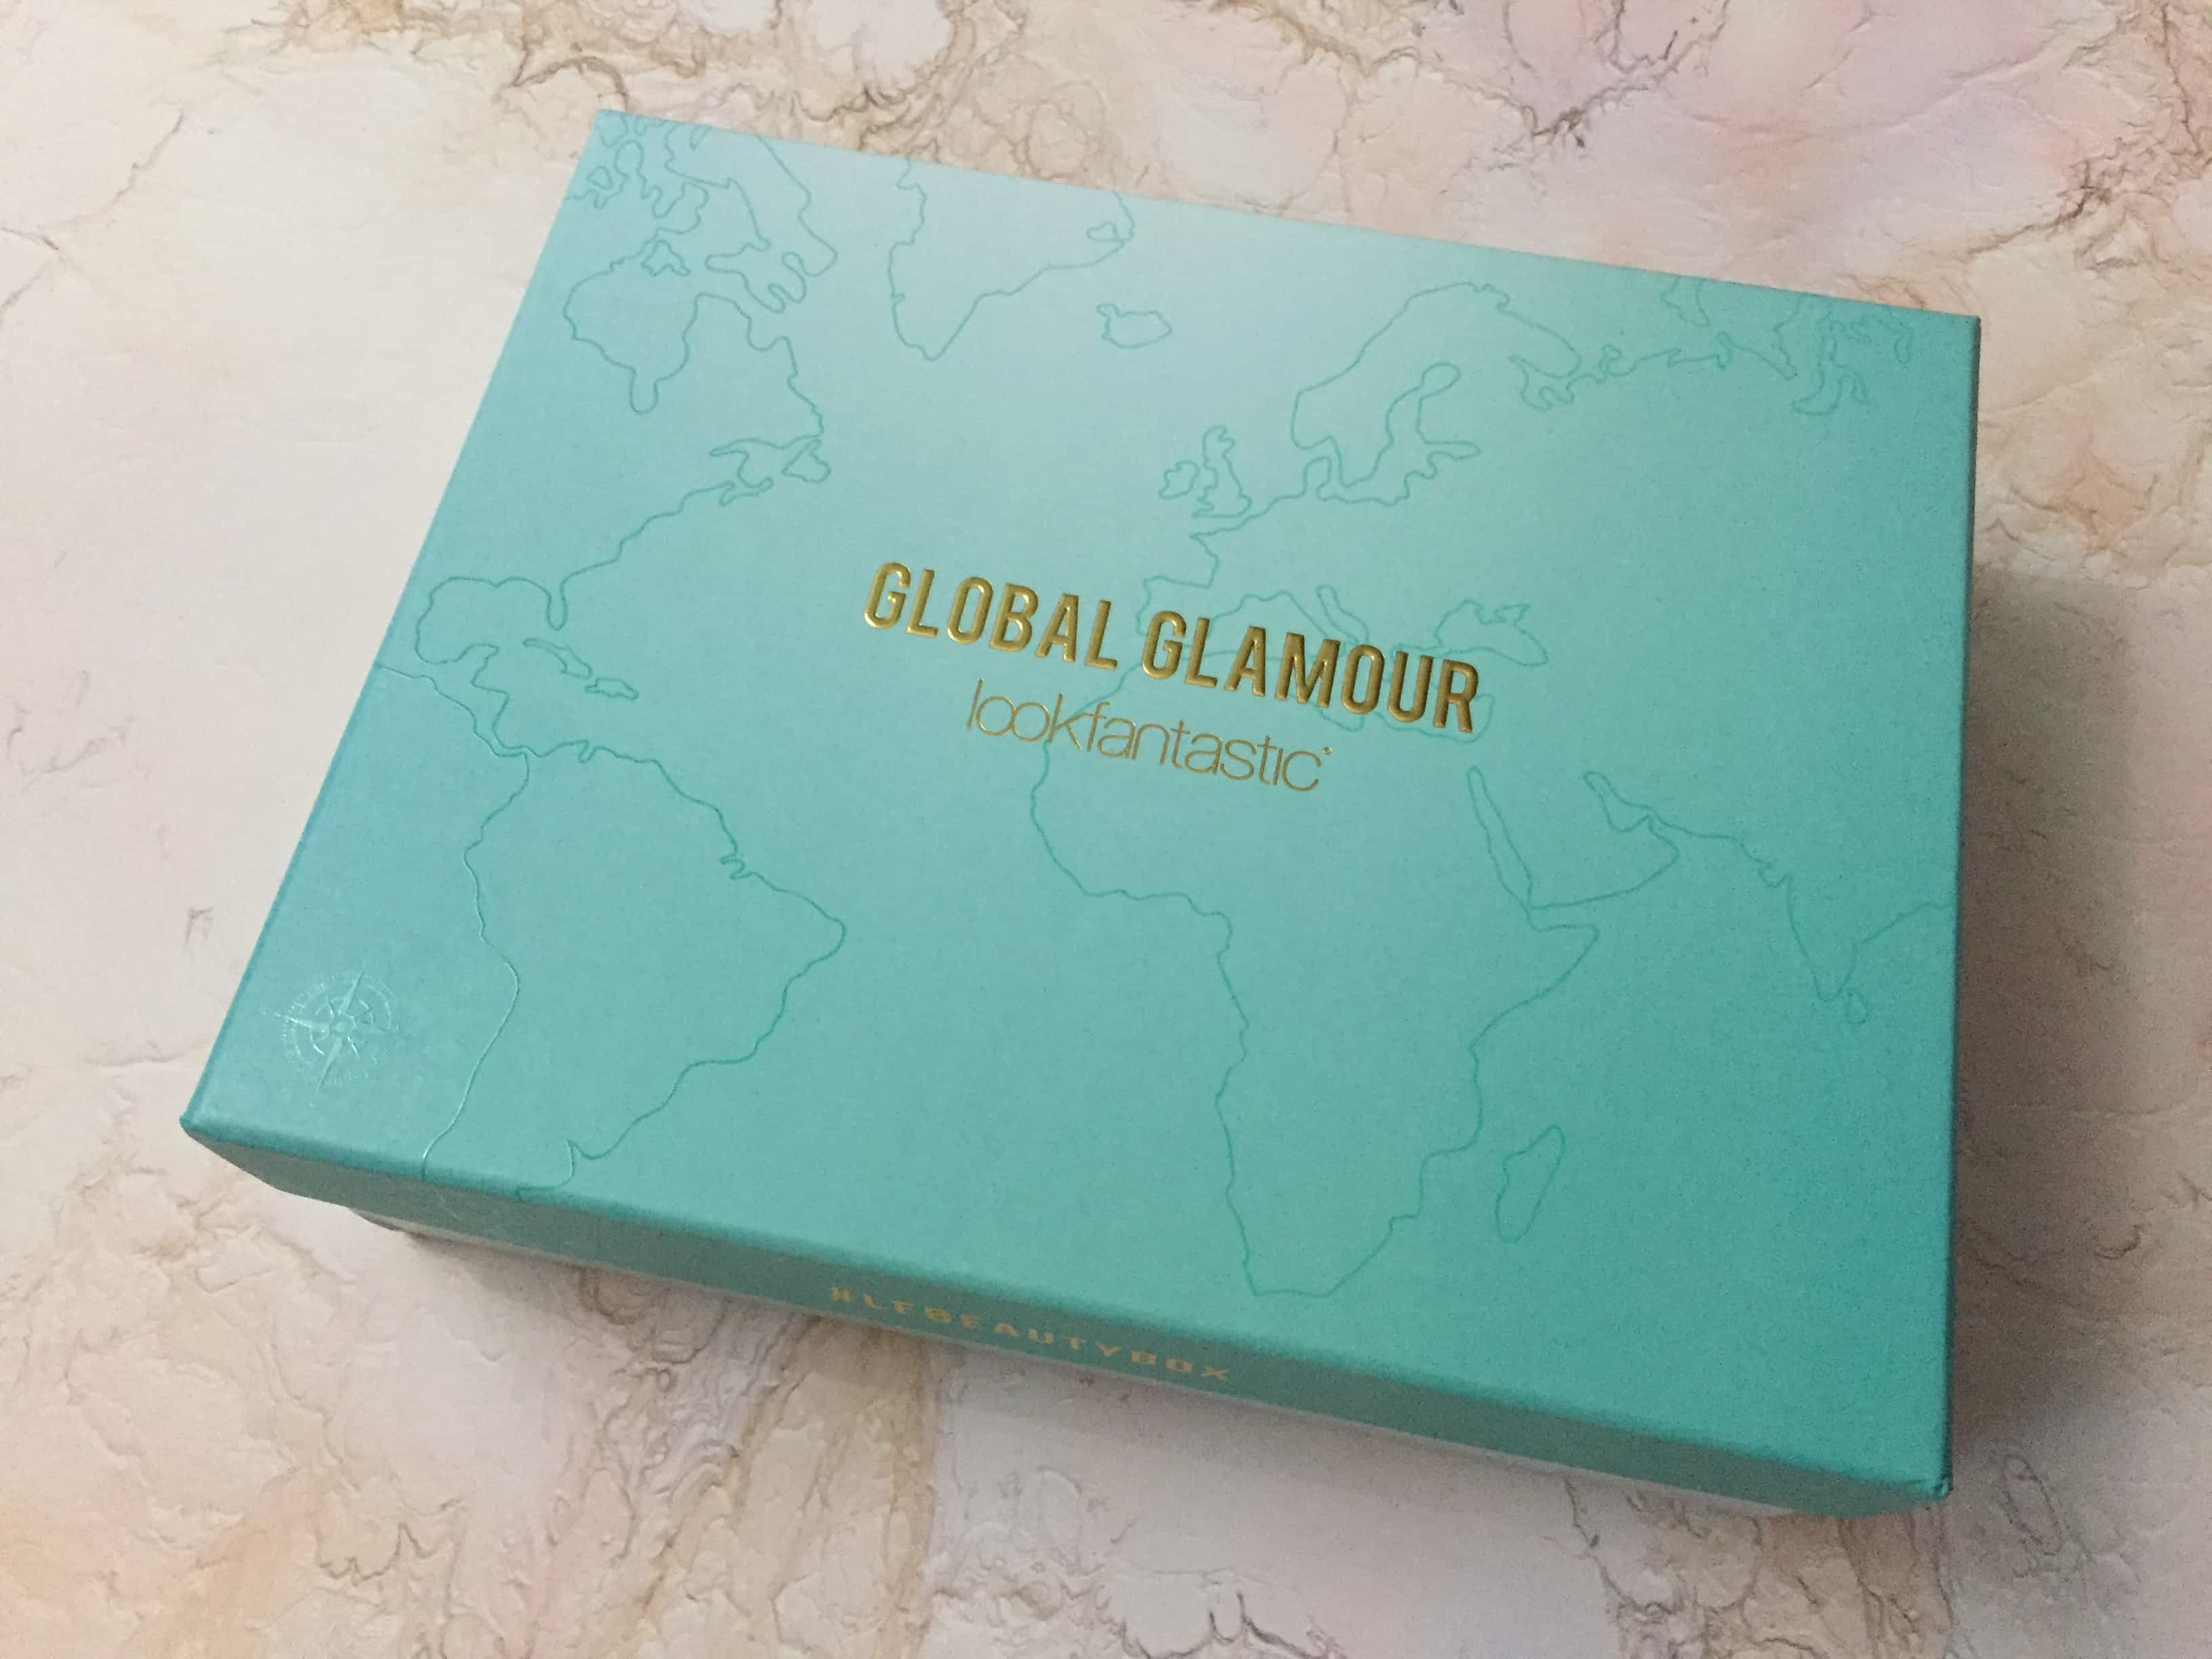 lookfantastic Beauty Box August 2017 Subscription Box Review